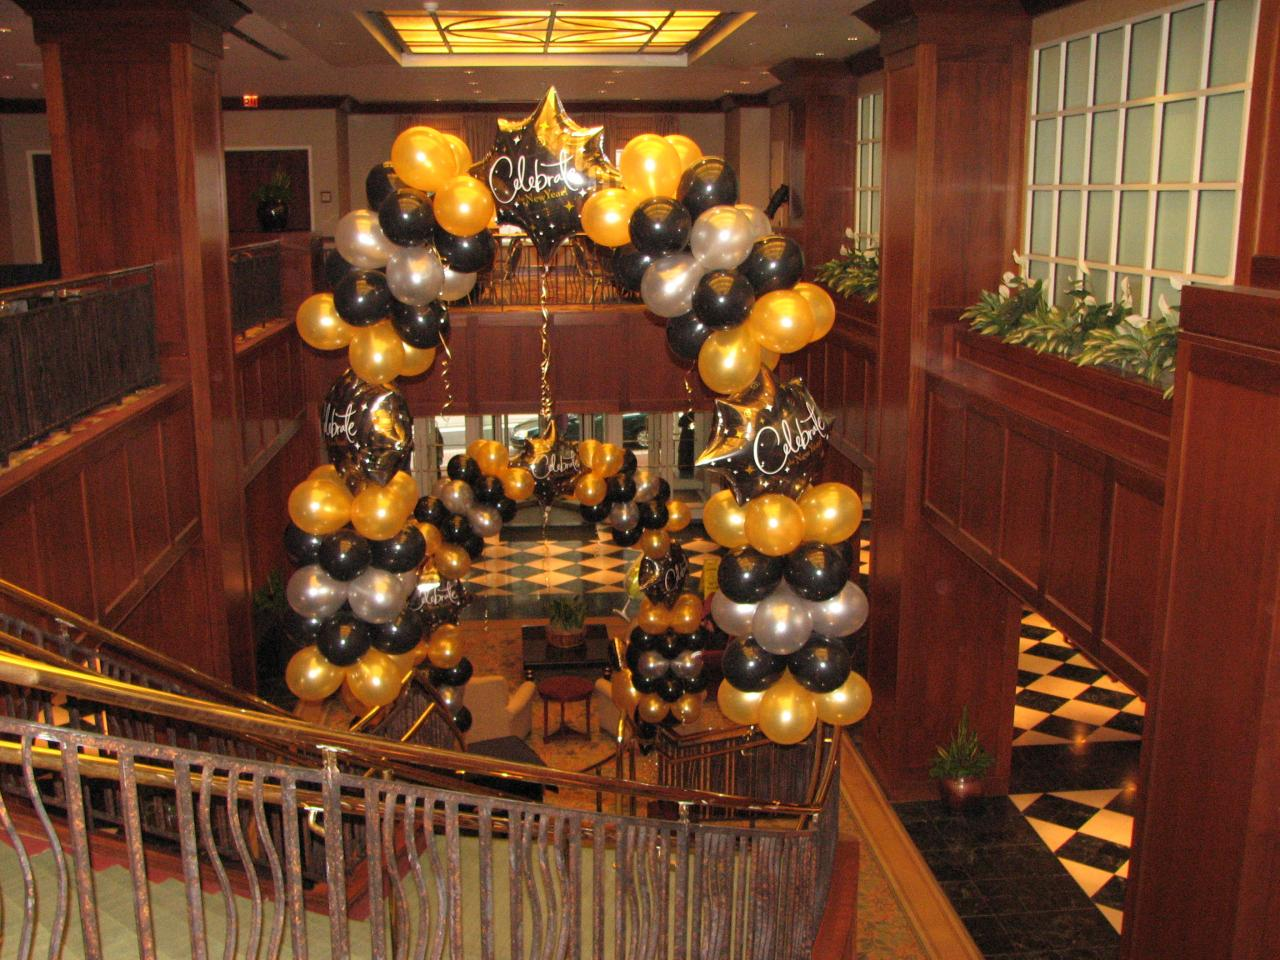 Bouquets & Balloons - New Years Decorations Ballons ...